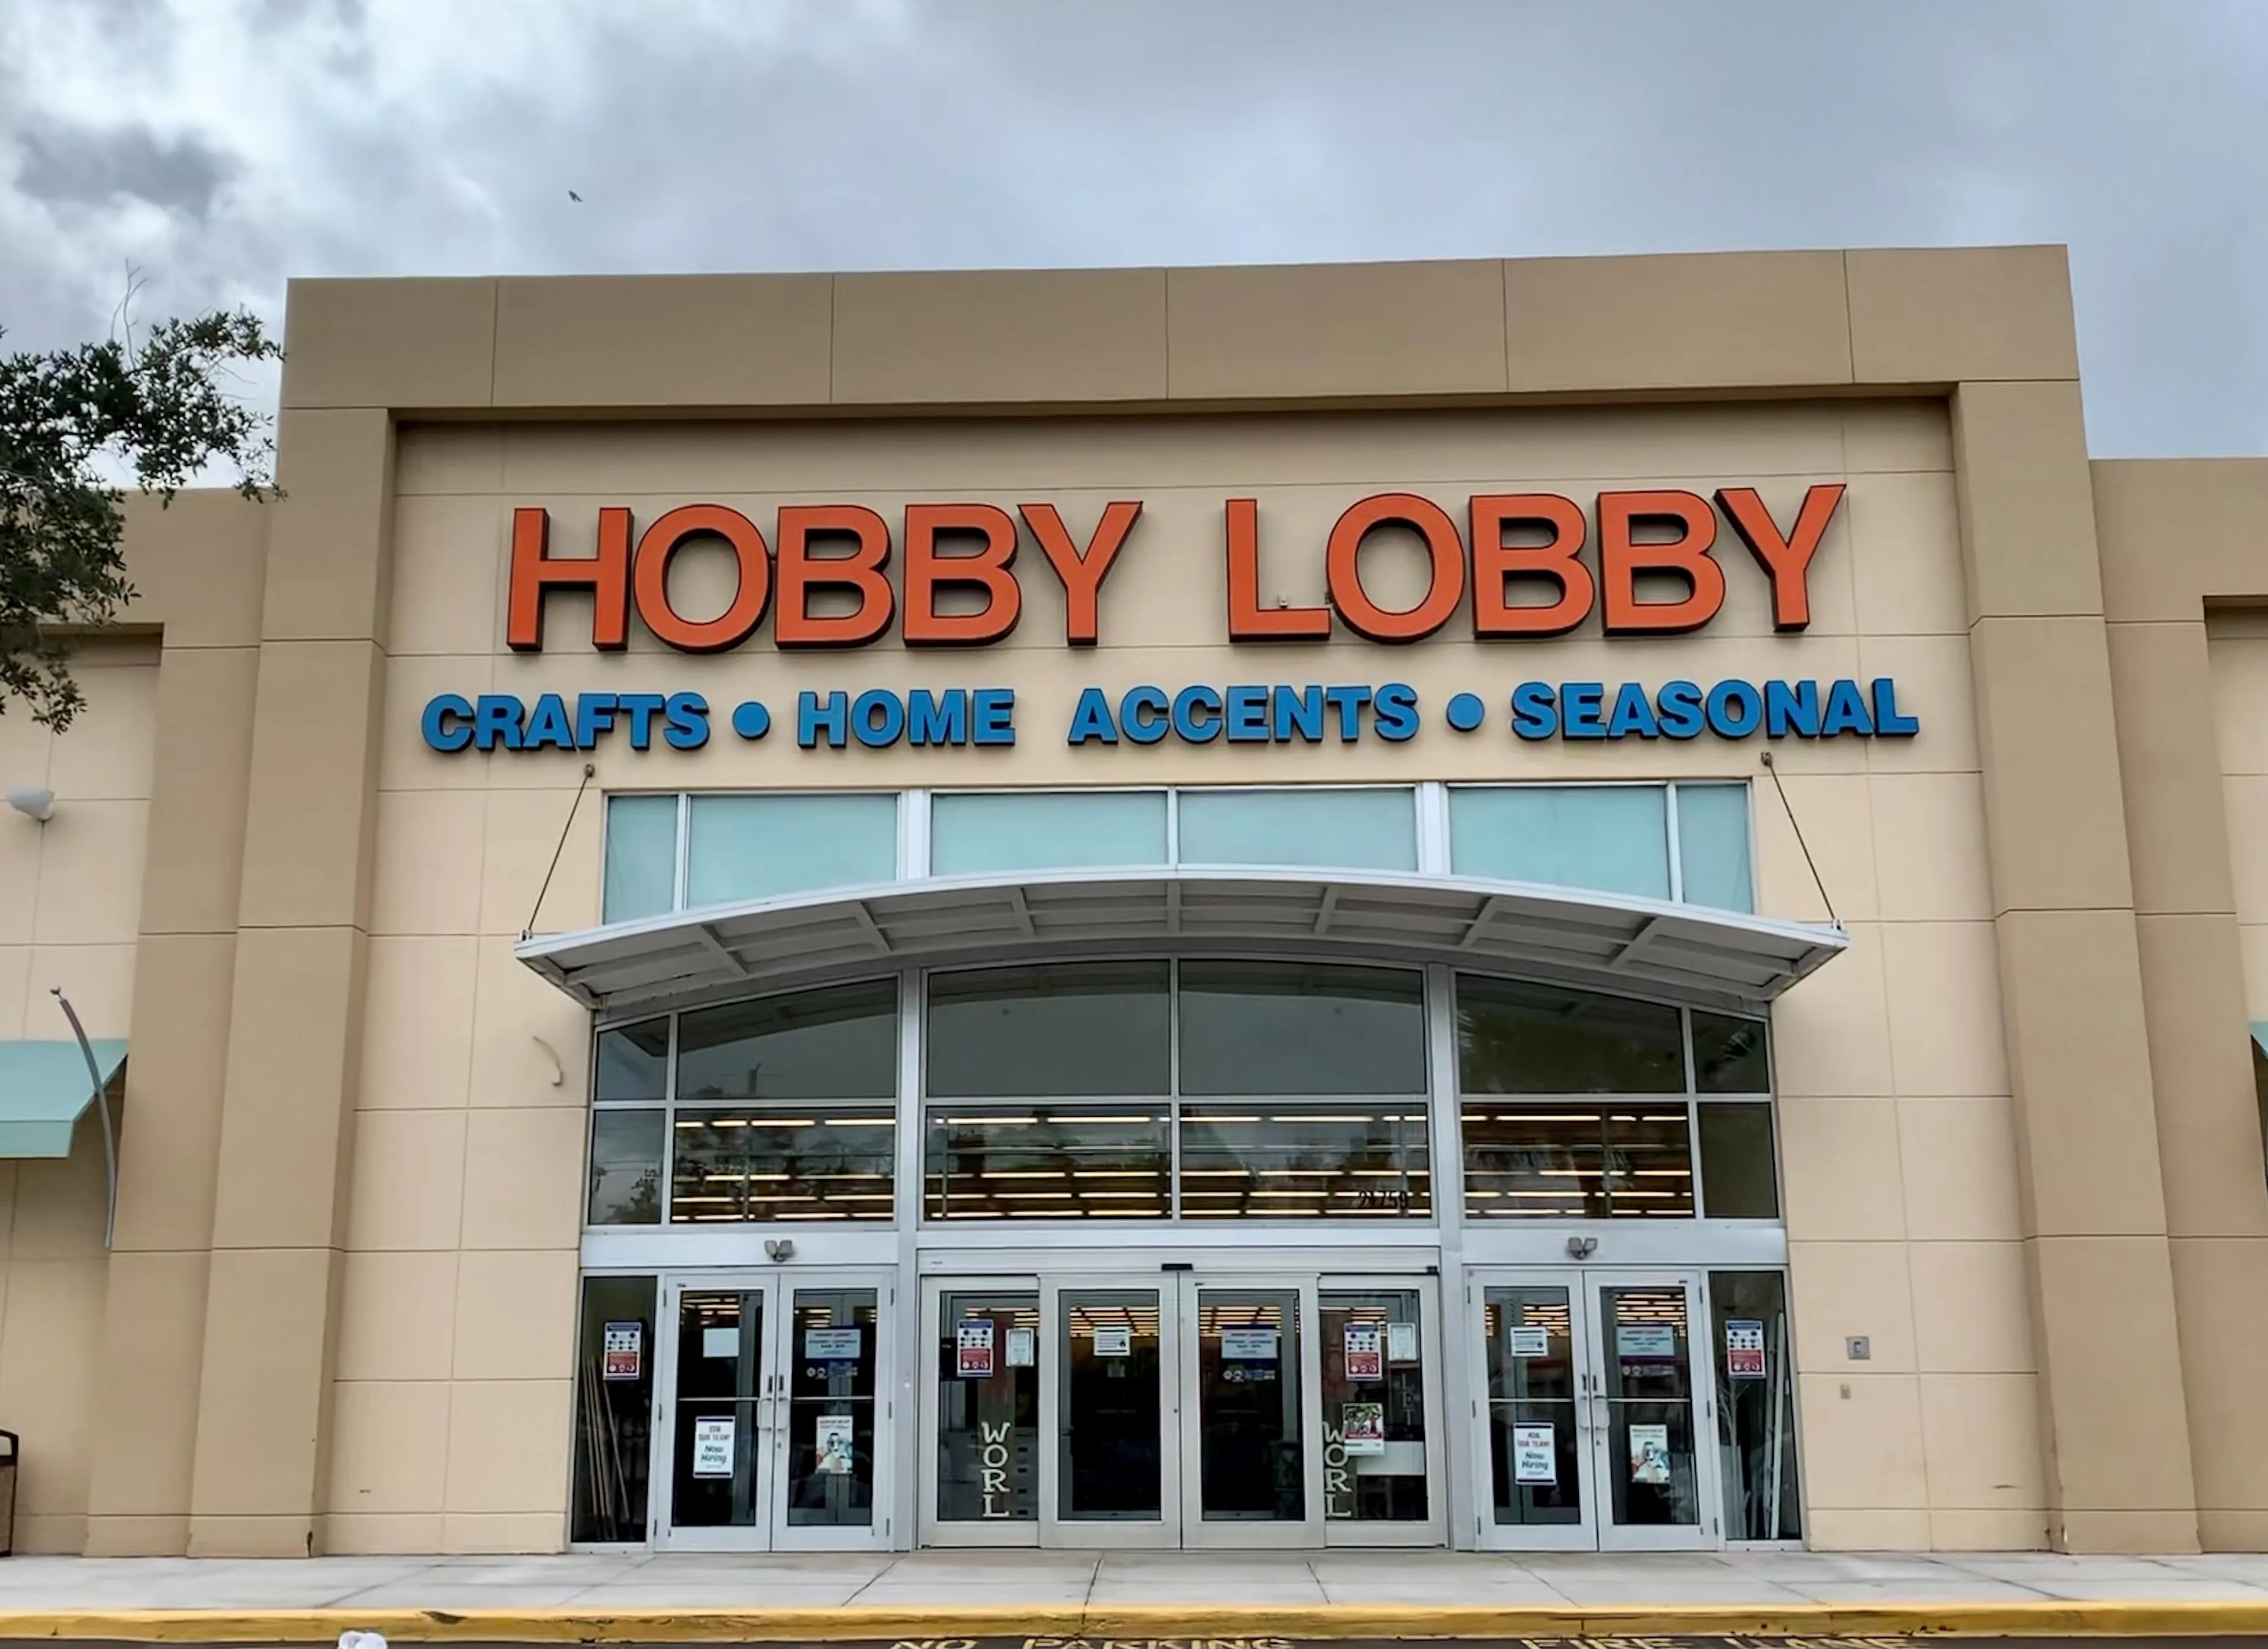 ee6ff8e7 4d70 46cf a615 35e72c82d34d Hobby Lobby Free food for Super Bowl LV: Here's where to get free wings, pizza deals and free delivery